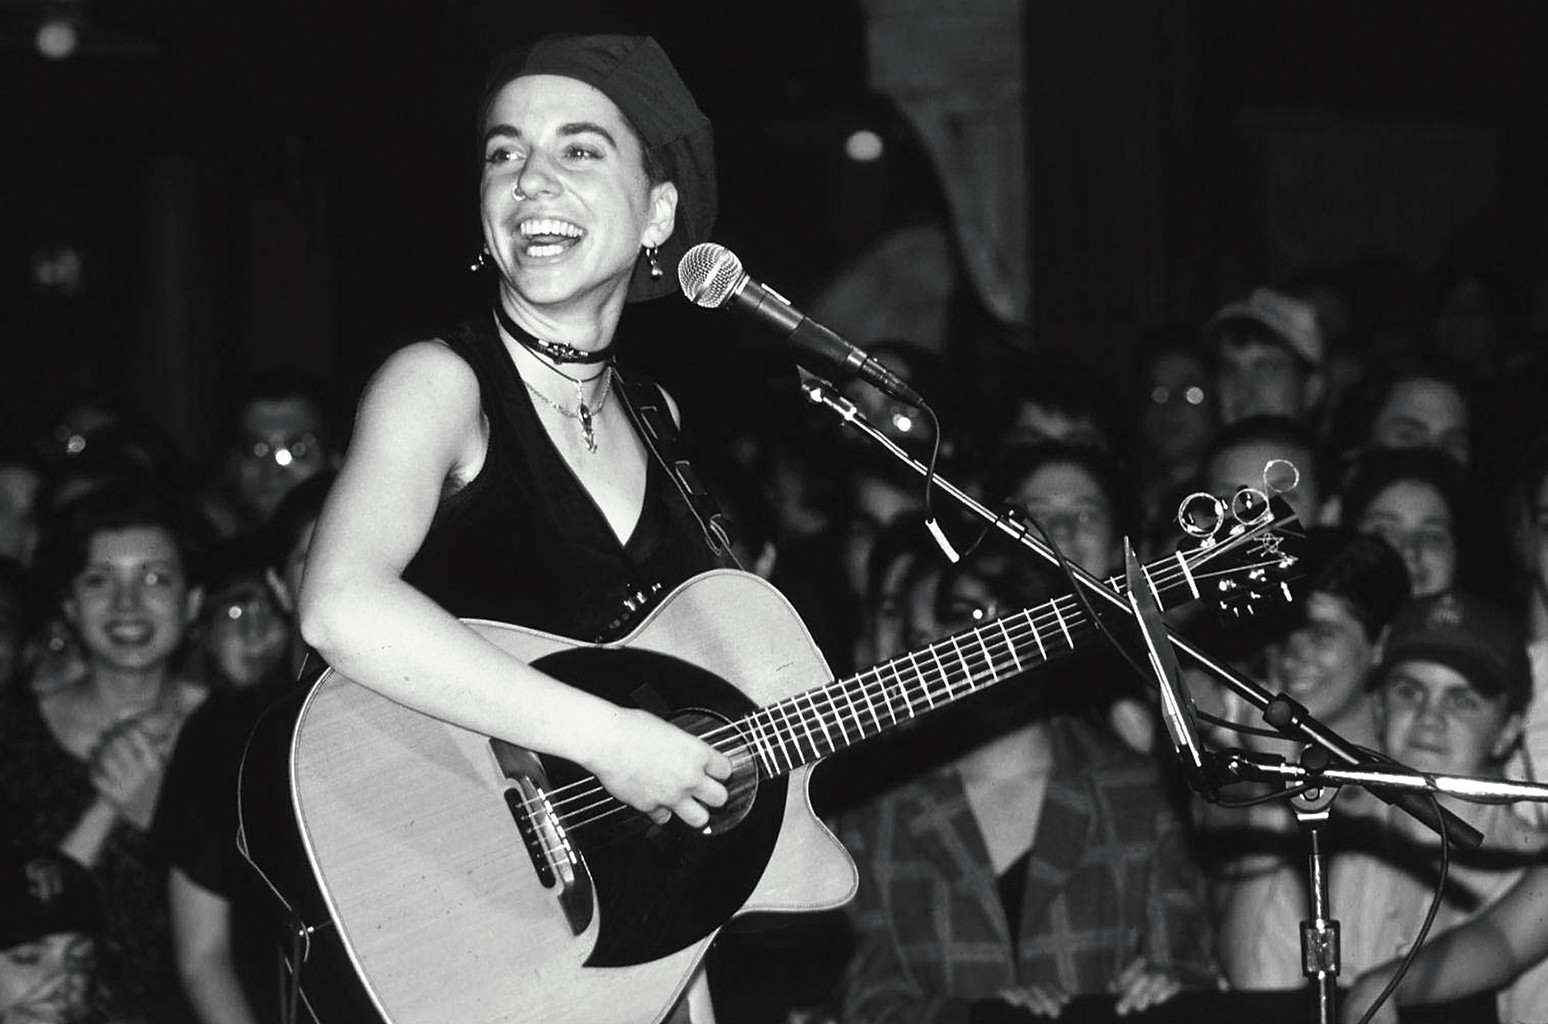 Ani DiFranco performs at Wetlands in New York City in 1994.